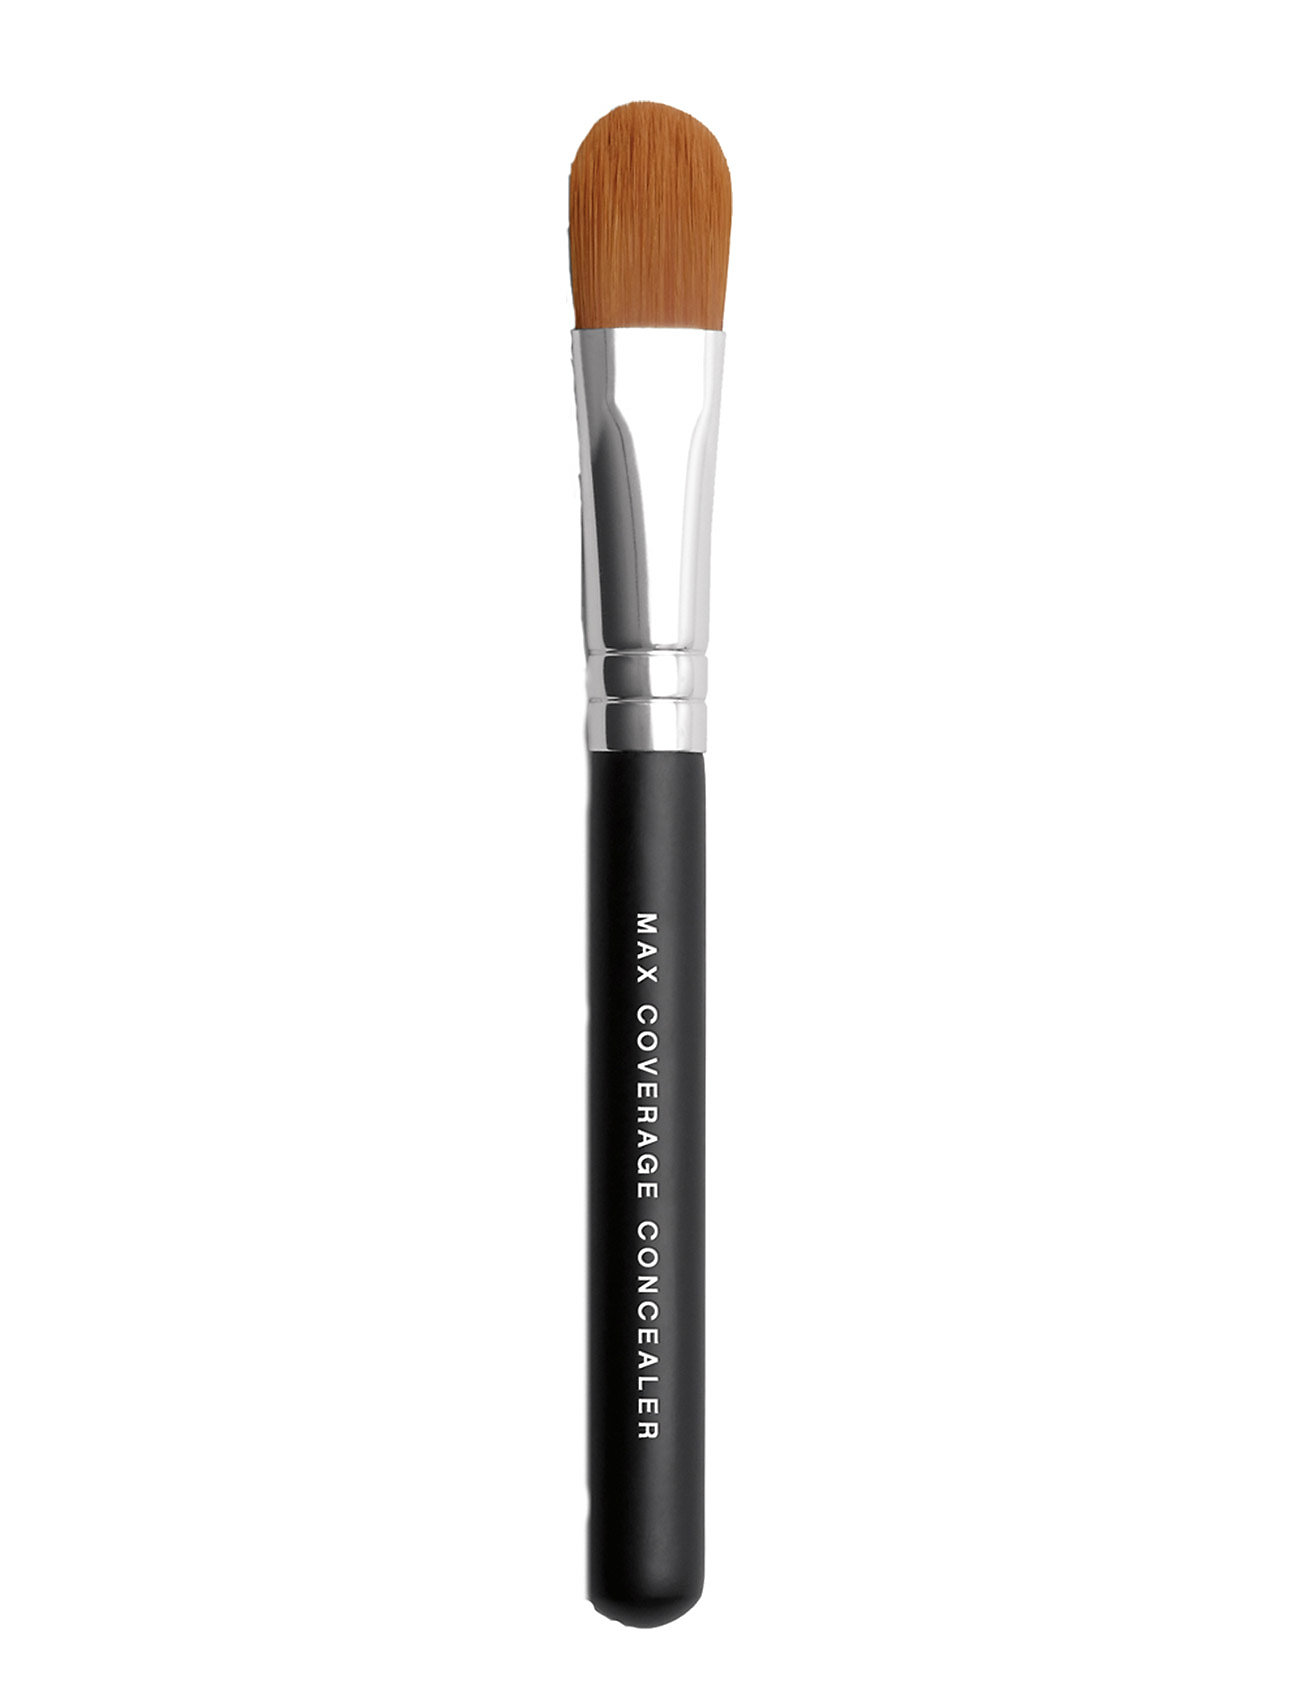 bareMinerals Maximum Coverage Concealer Brush - CLEAR